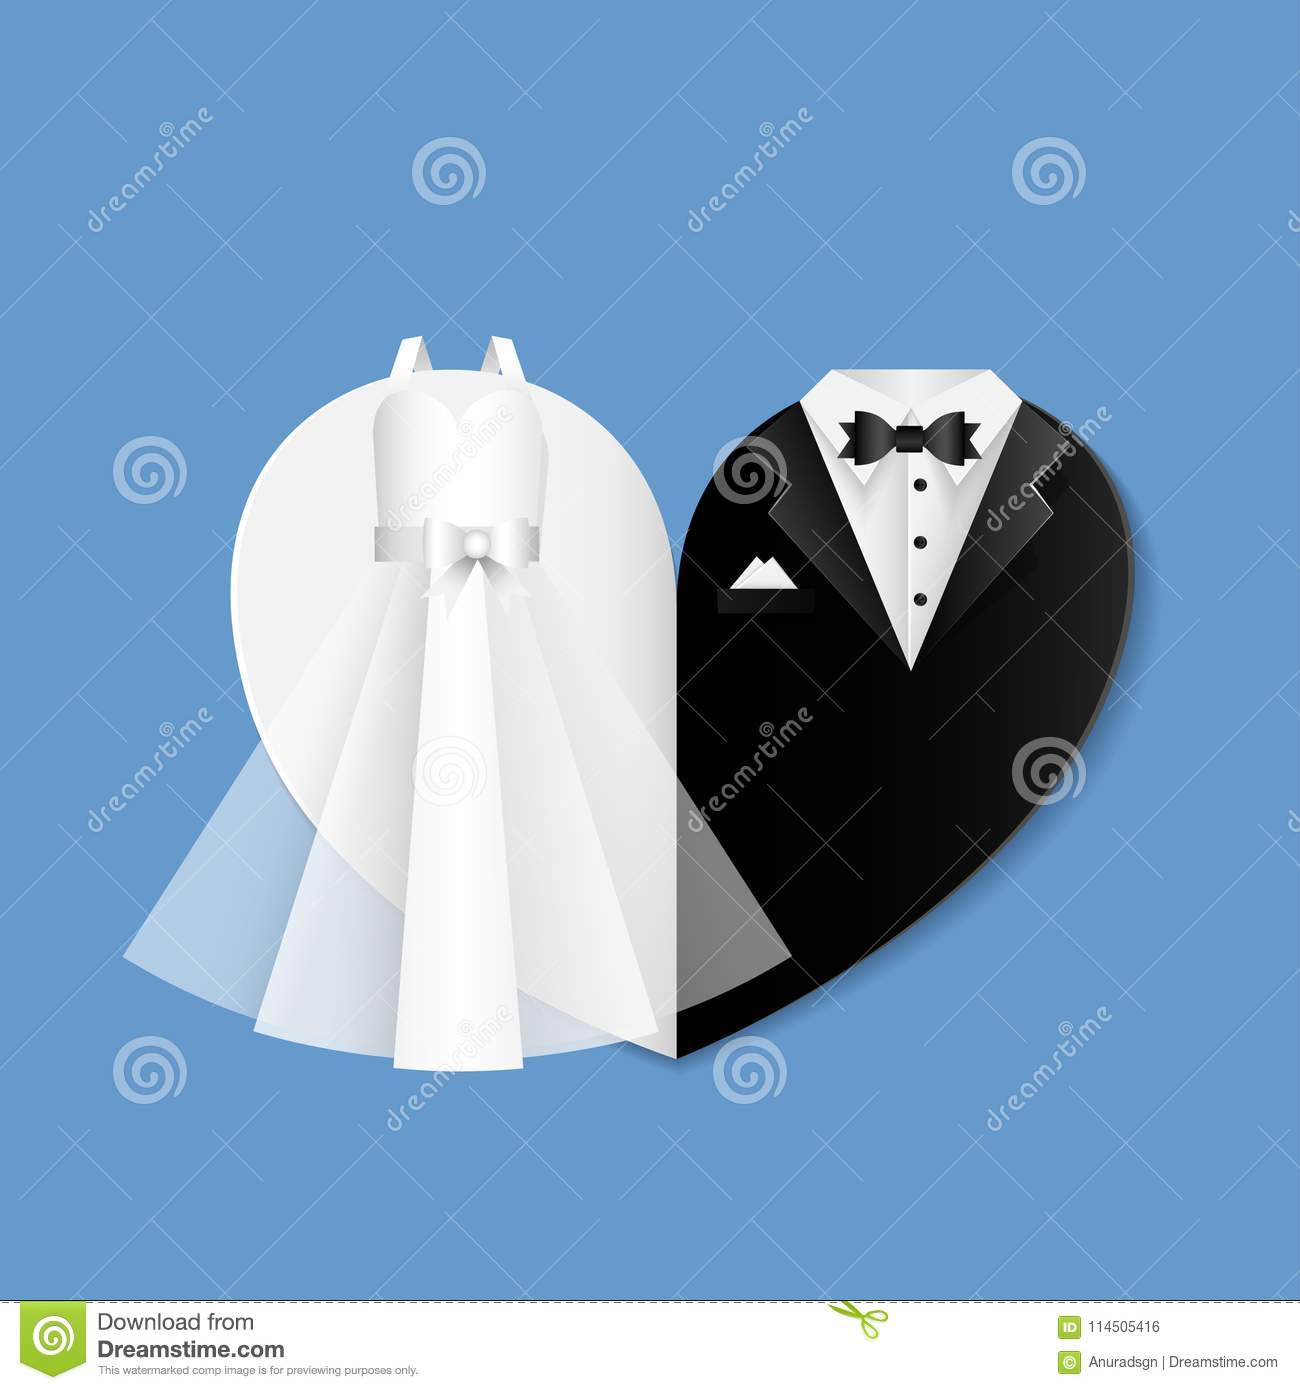 Wedding Shape Of Heart Illustration - Clothes Of The Bride And Groom ...